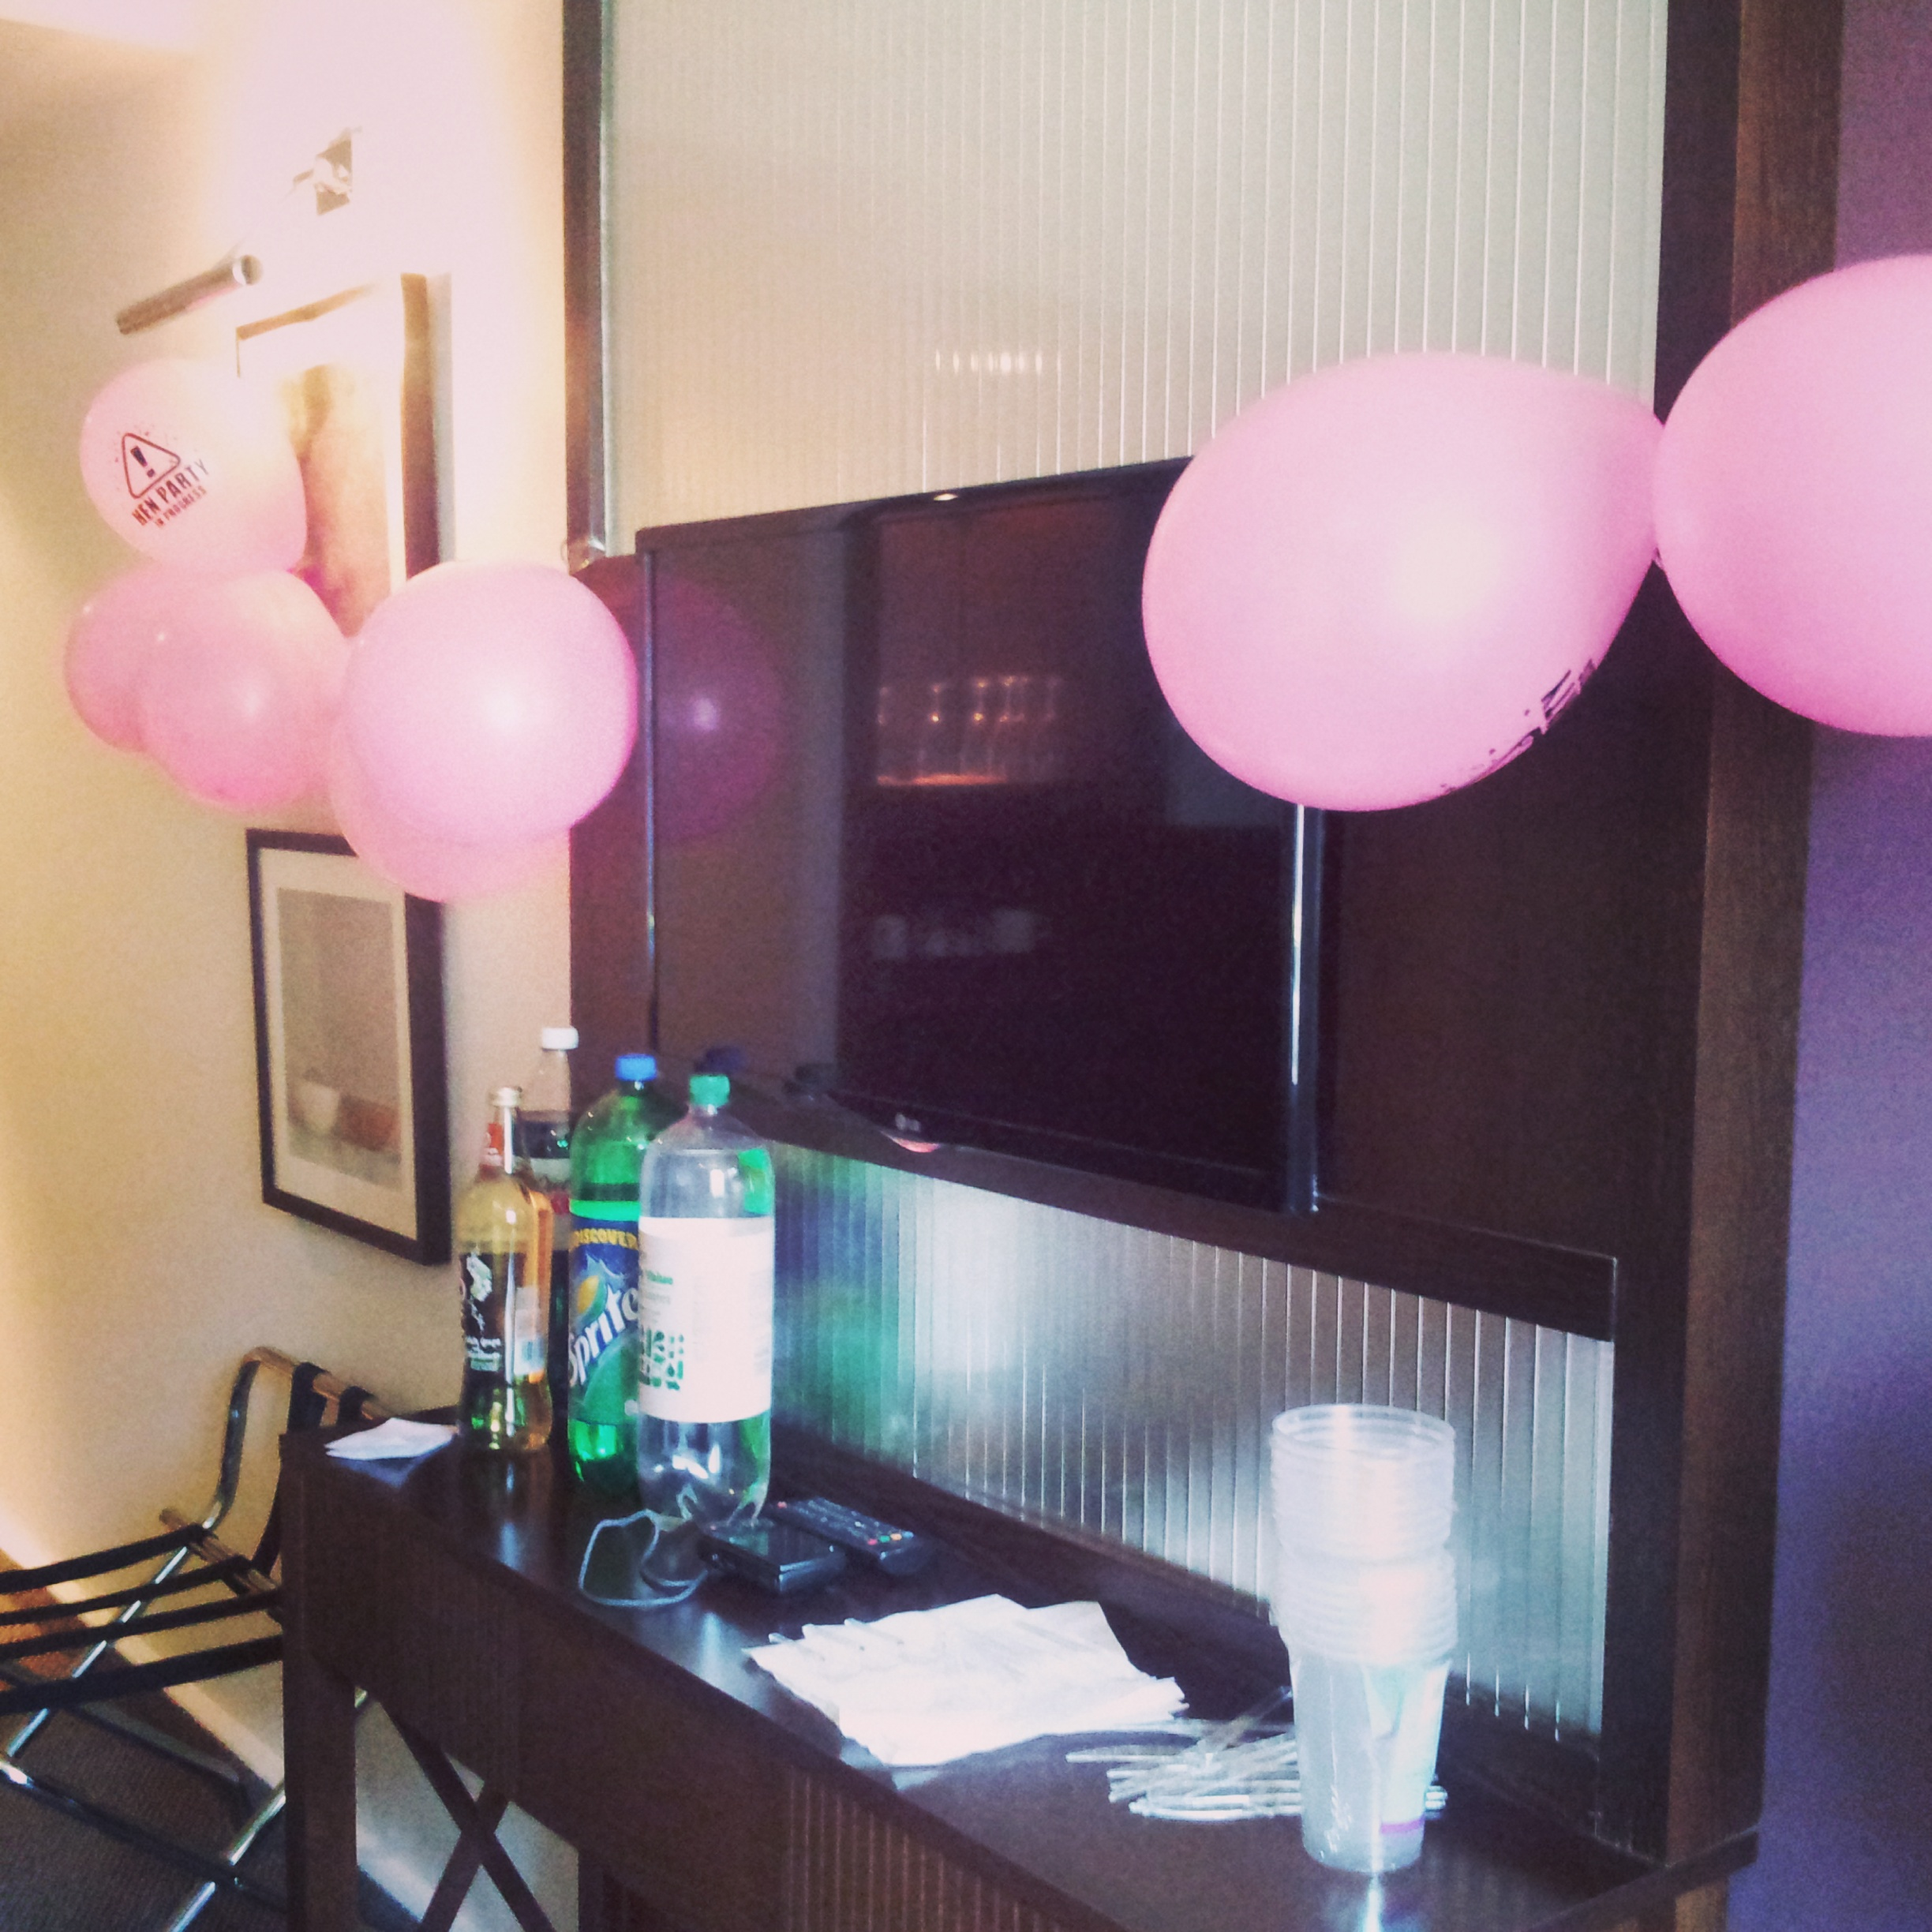 hen do hotel room decoration balloon | why waste annual leave?